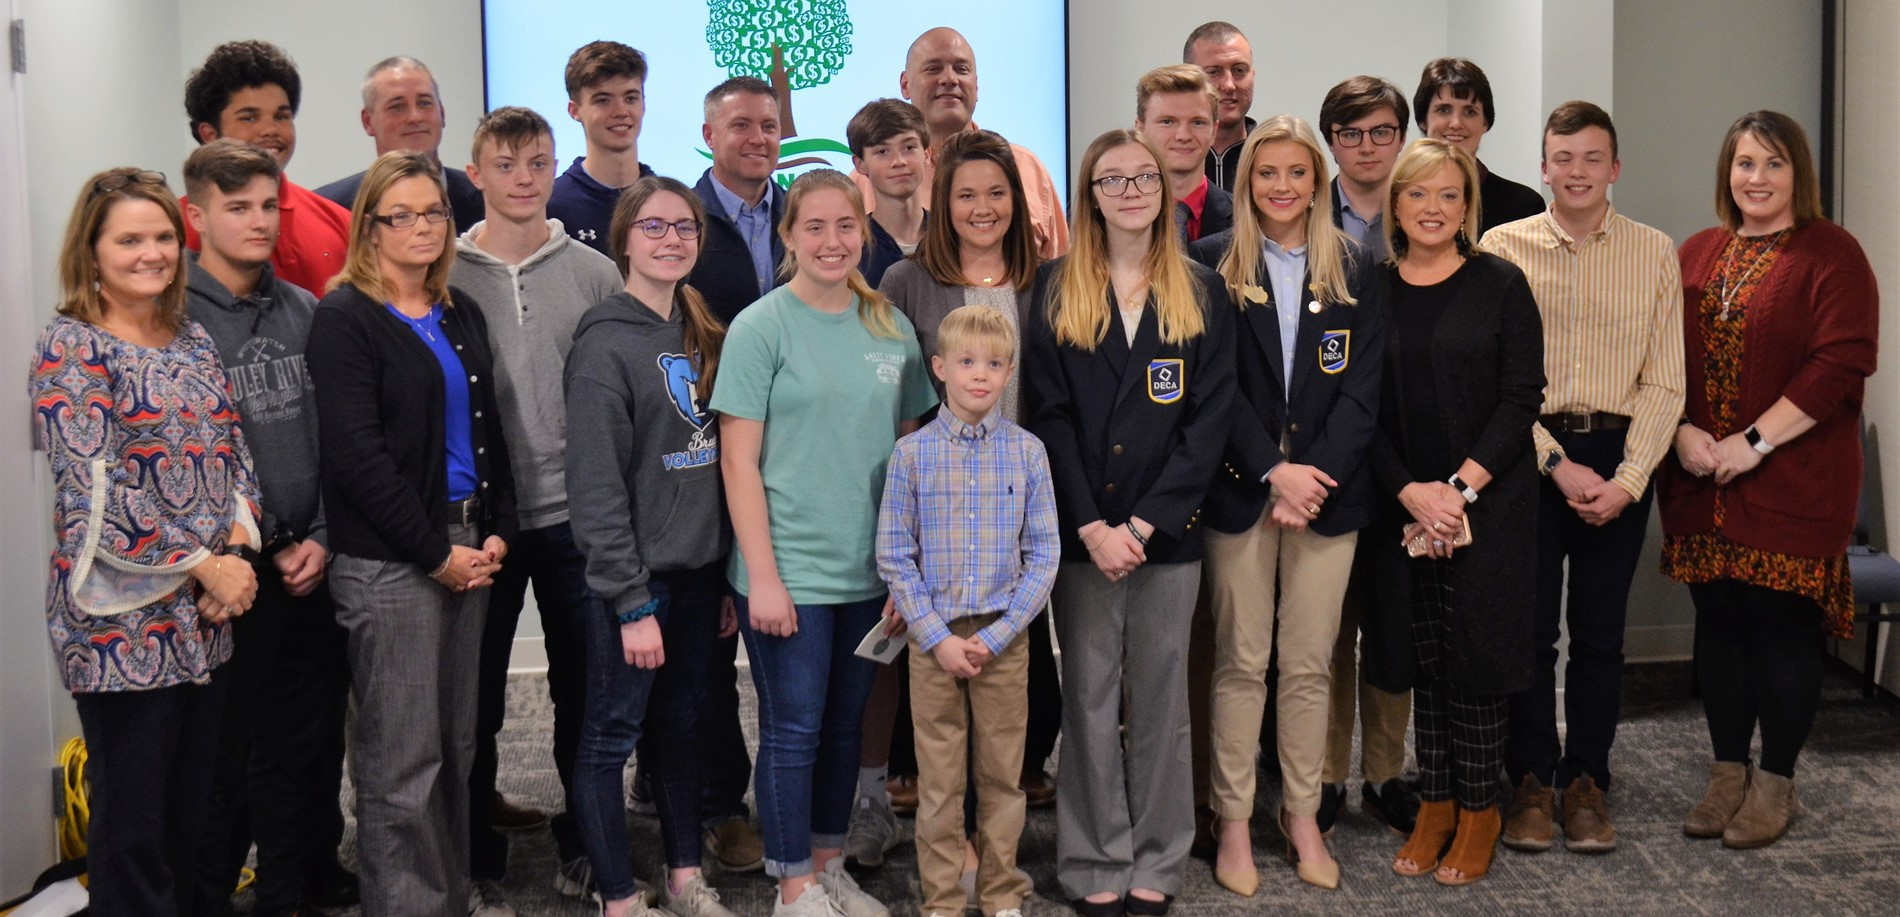 The Nelson family made a major gift to the Central Kentucky Community Foundation to help the HCS financial literacy program.